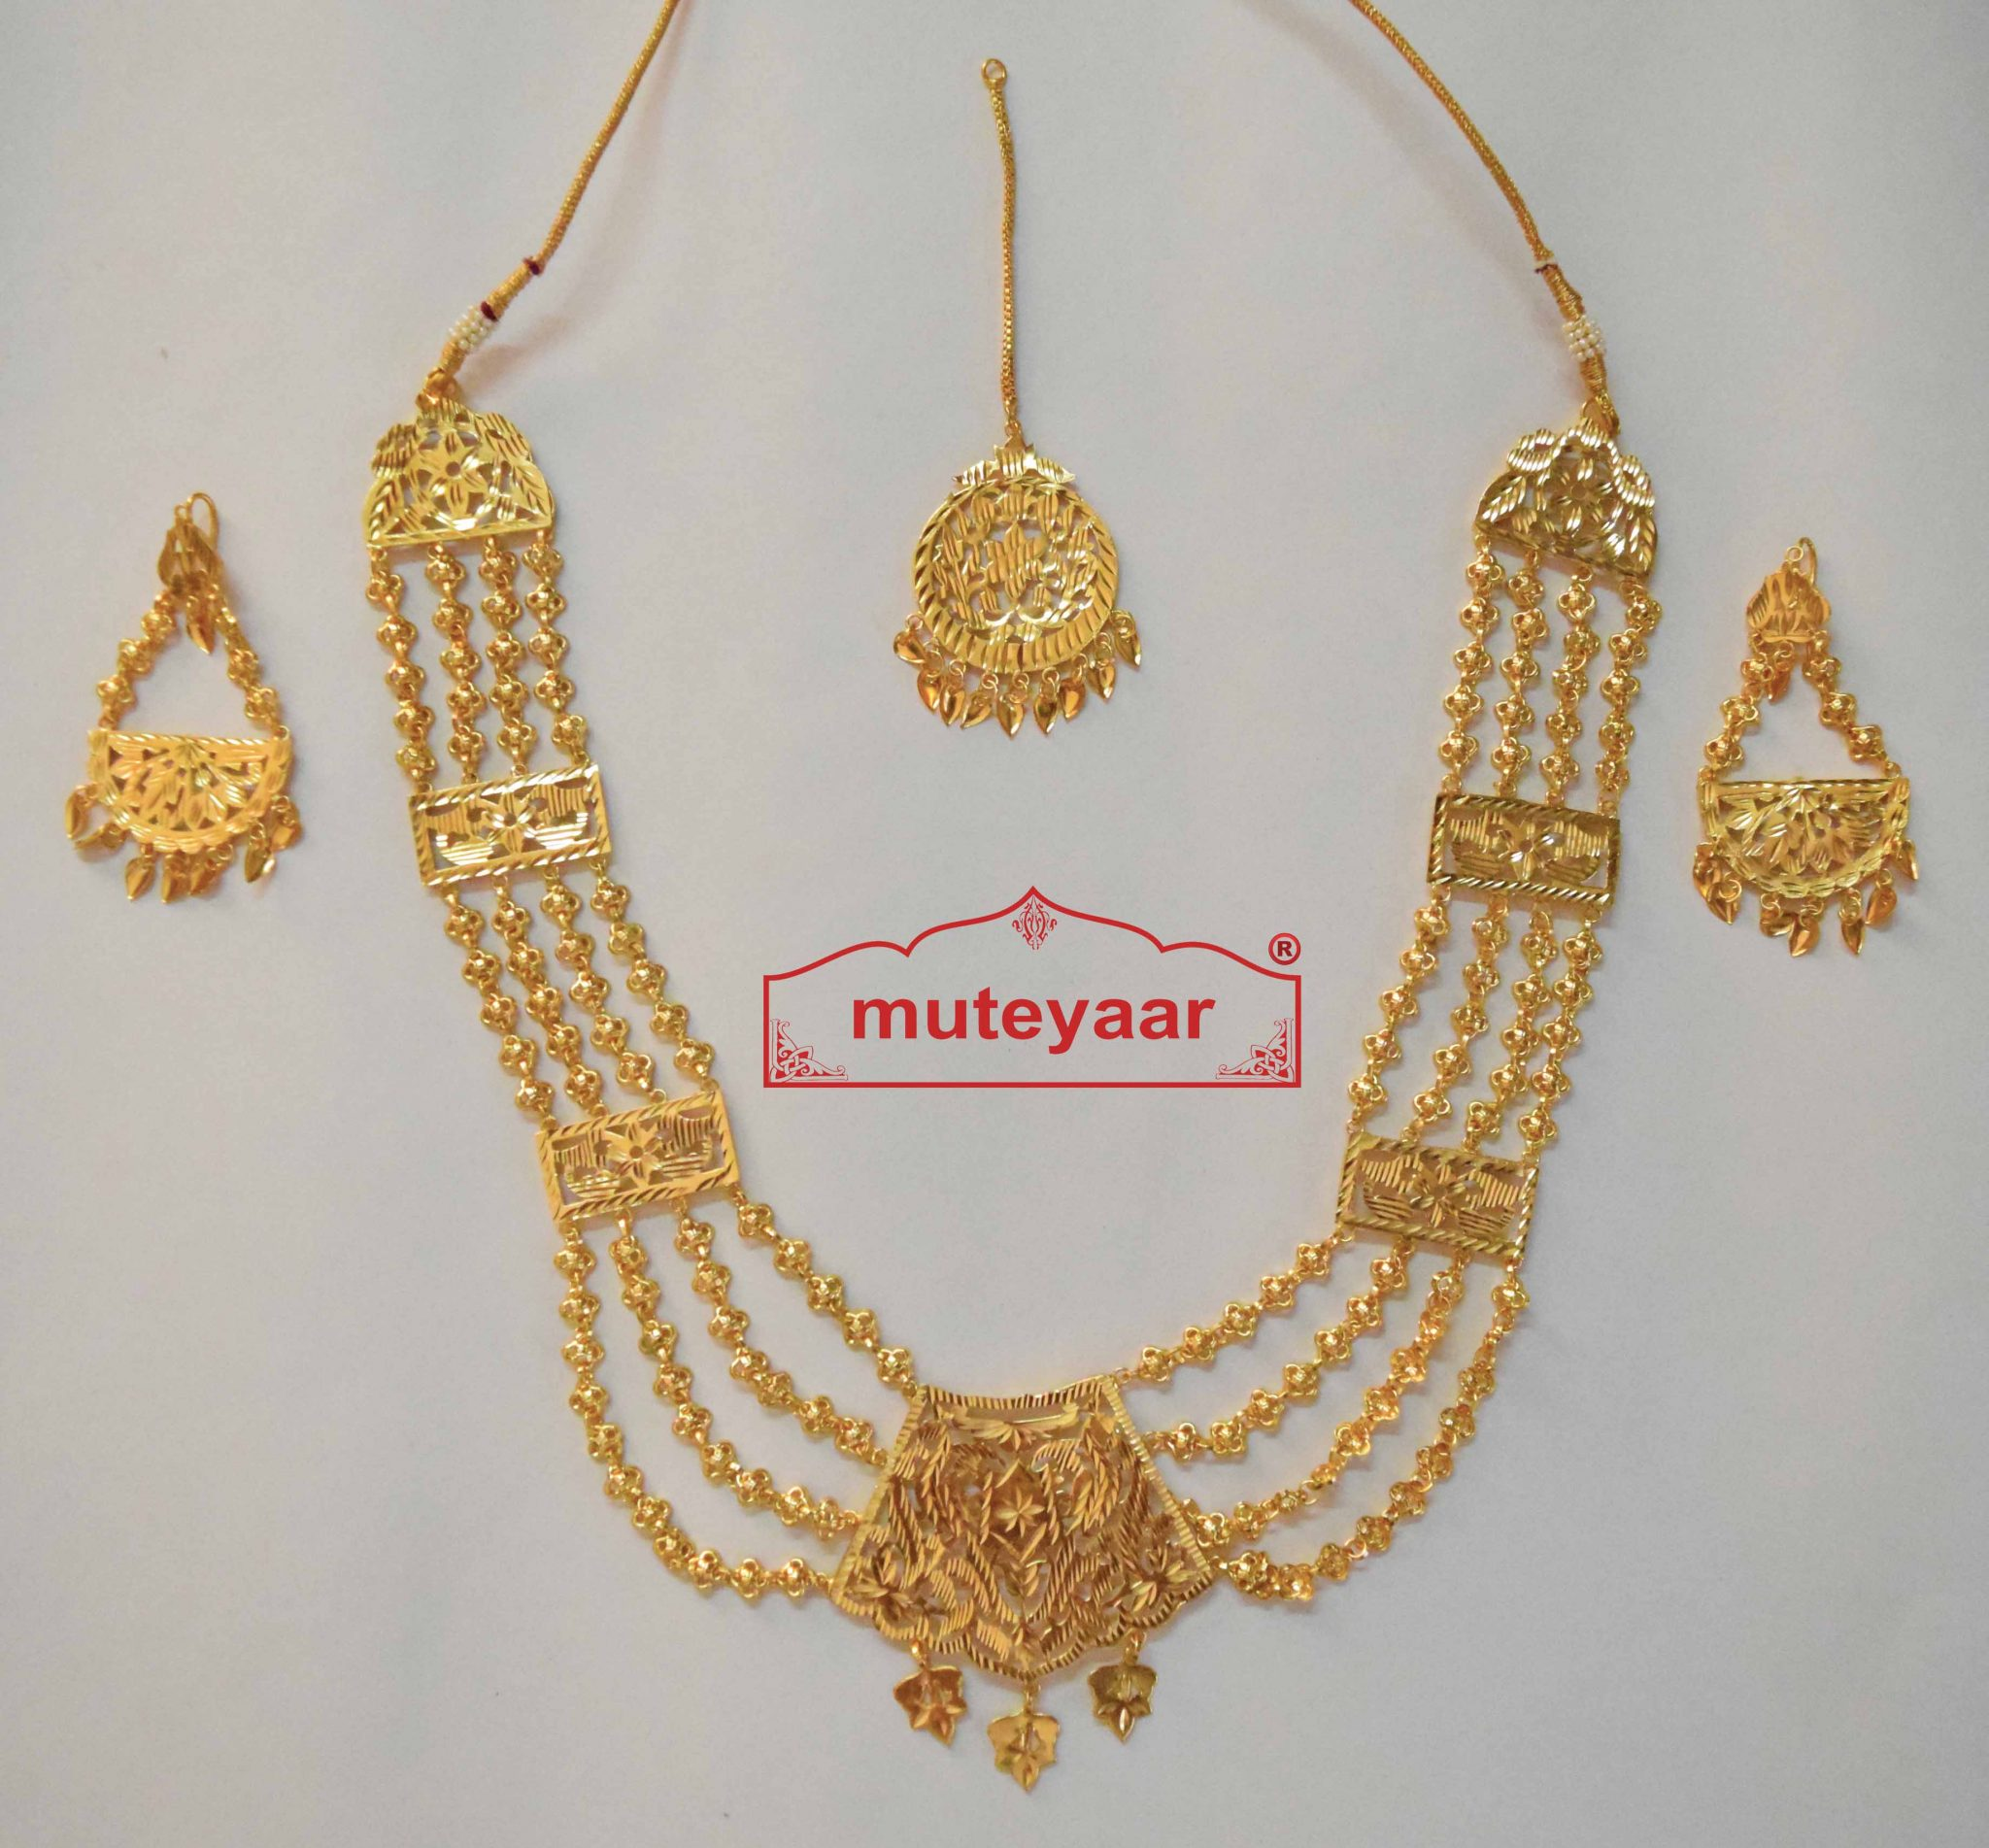 Maharani Haar Bhangra Giddha Jewelery set of Necklace + Earrings + Tikka 1